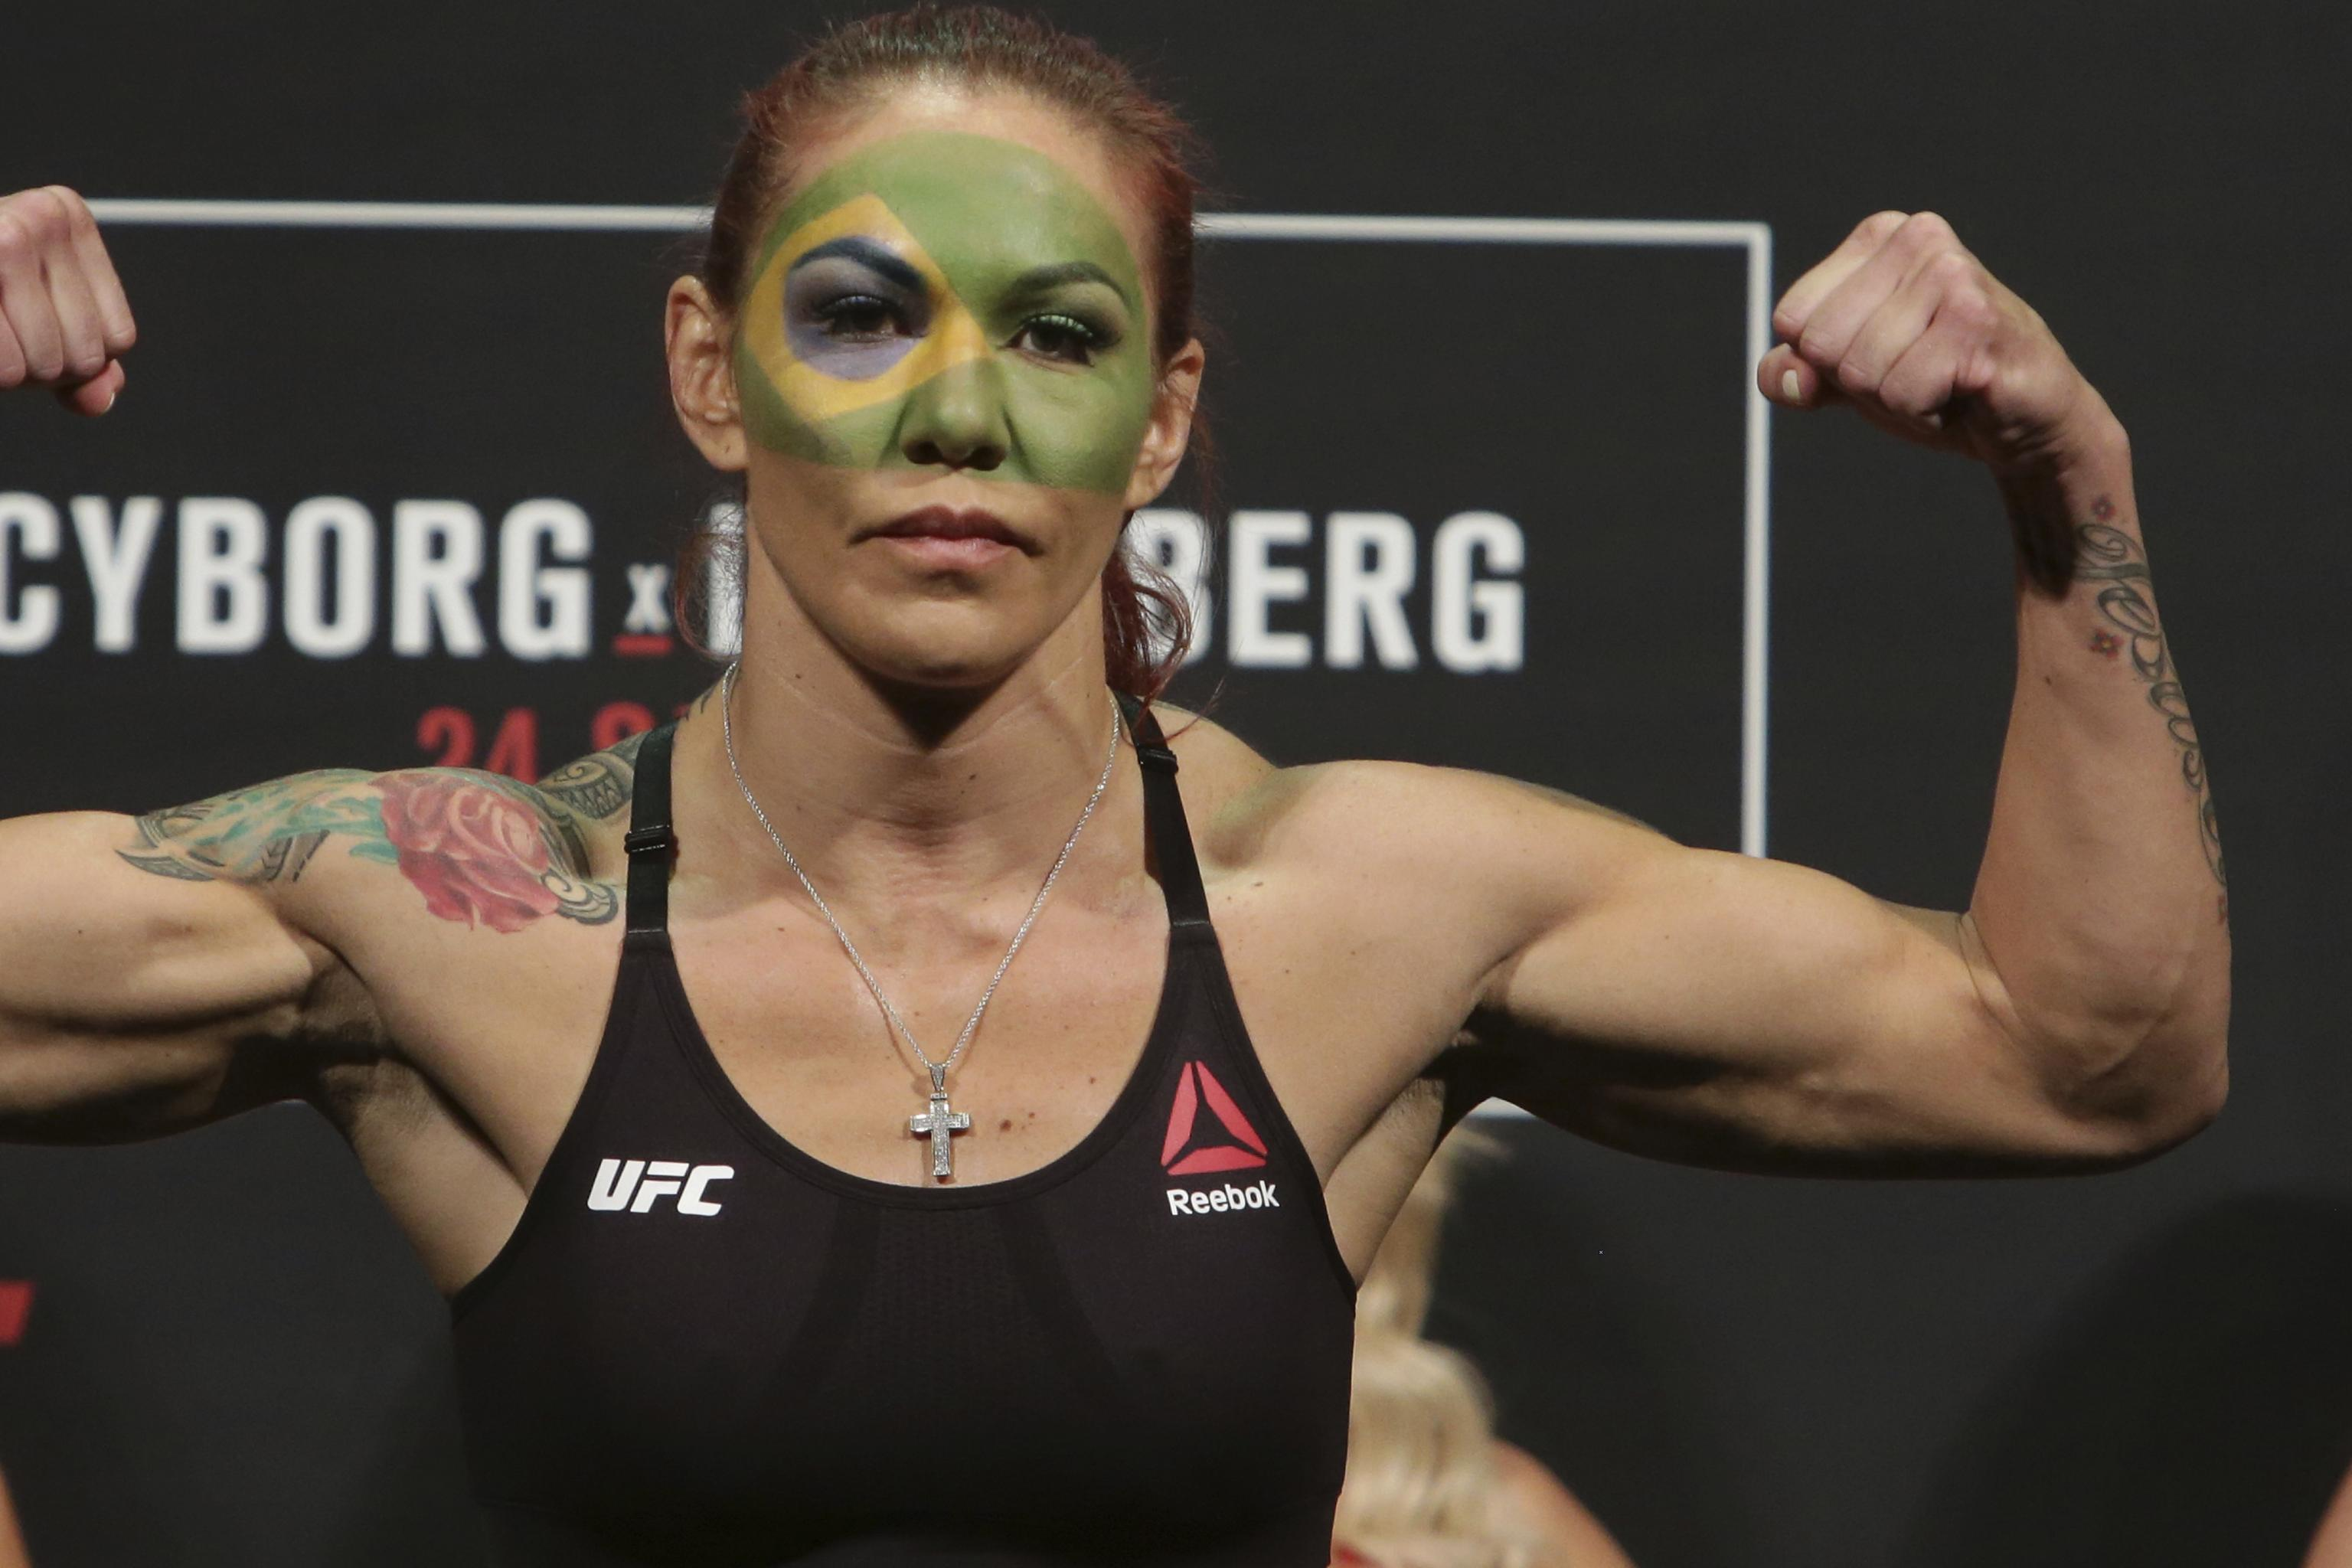 Cris Cyborg Vs Holly Holm The Best Fight In Women S Mma History Bleacher Report Latest News Videos And Highlights